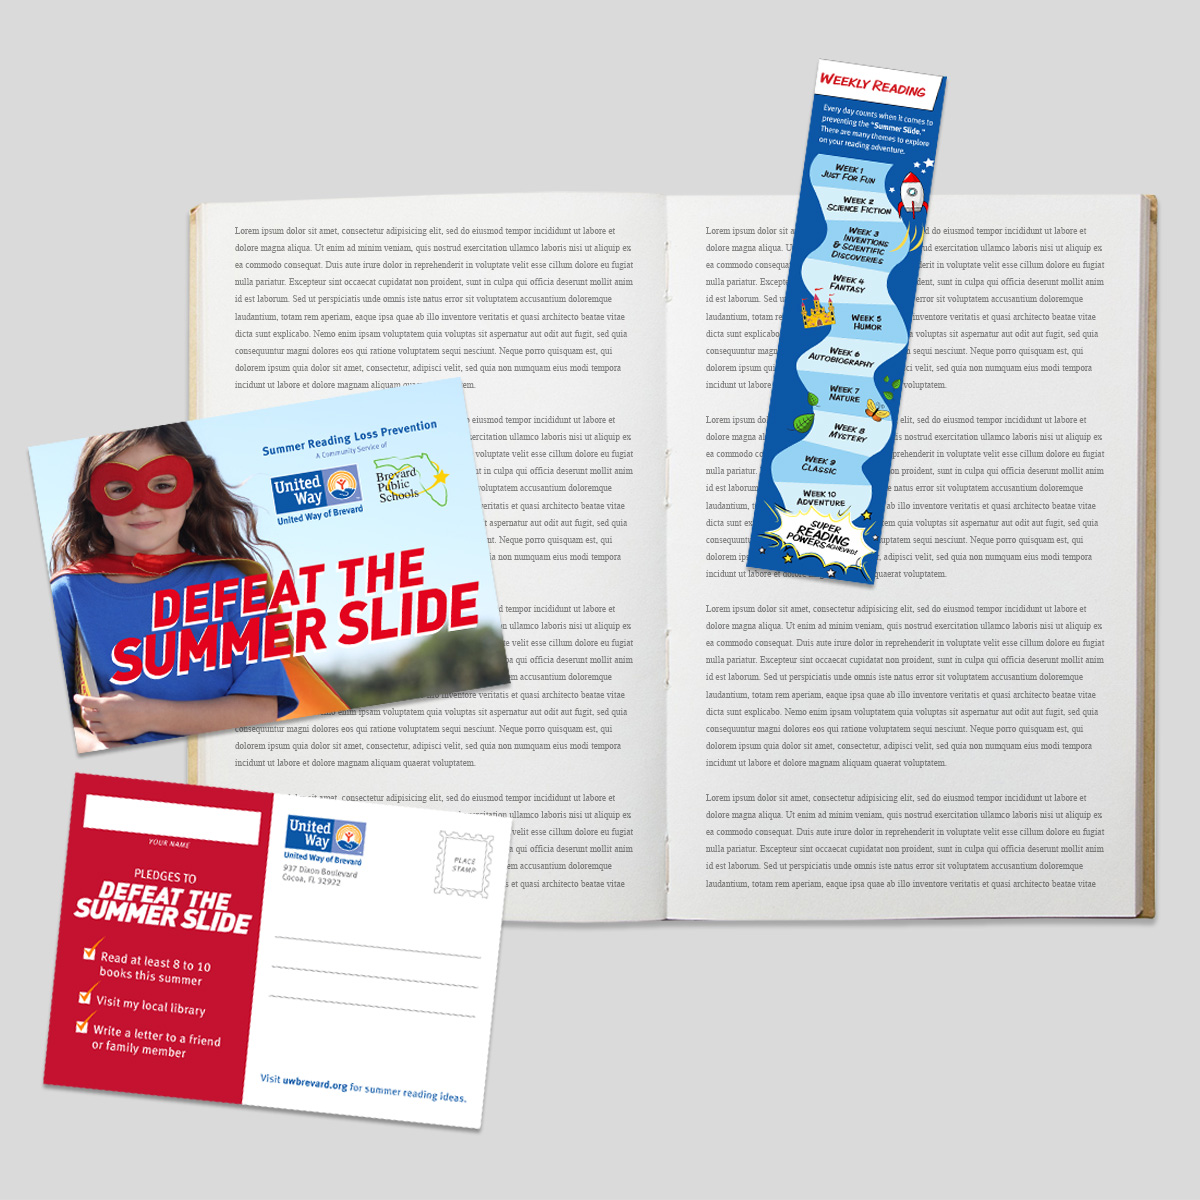 united way summer slide bookmark and postcard